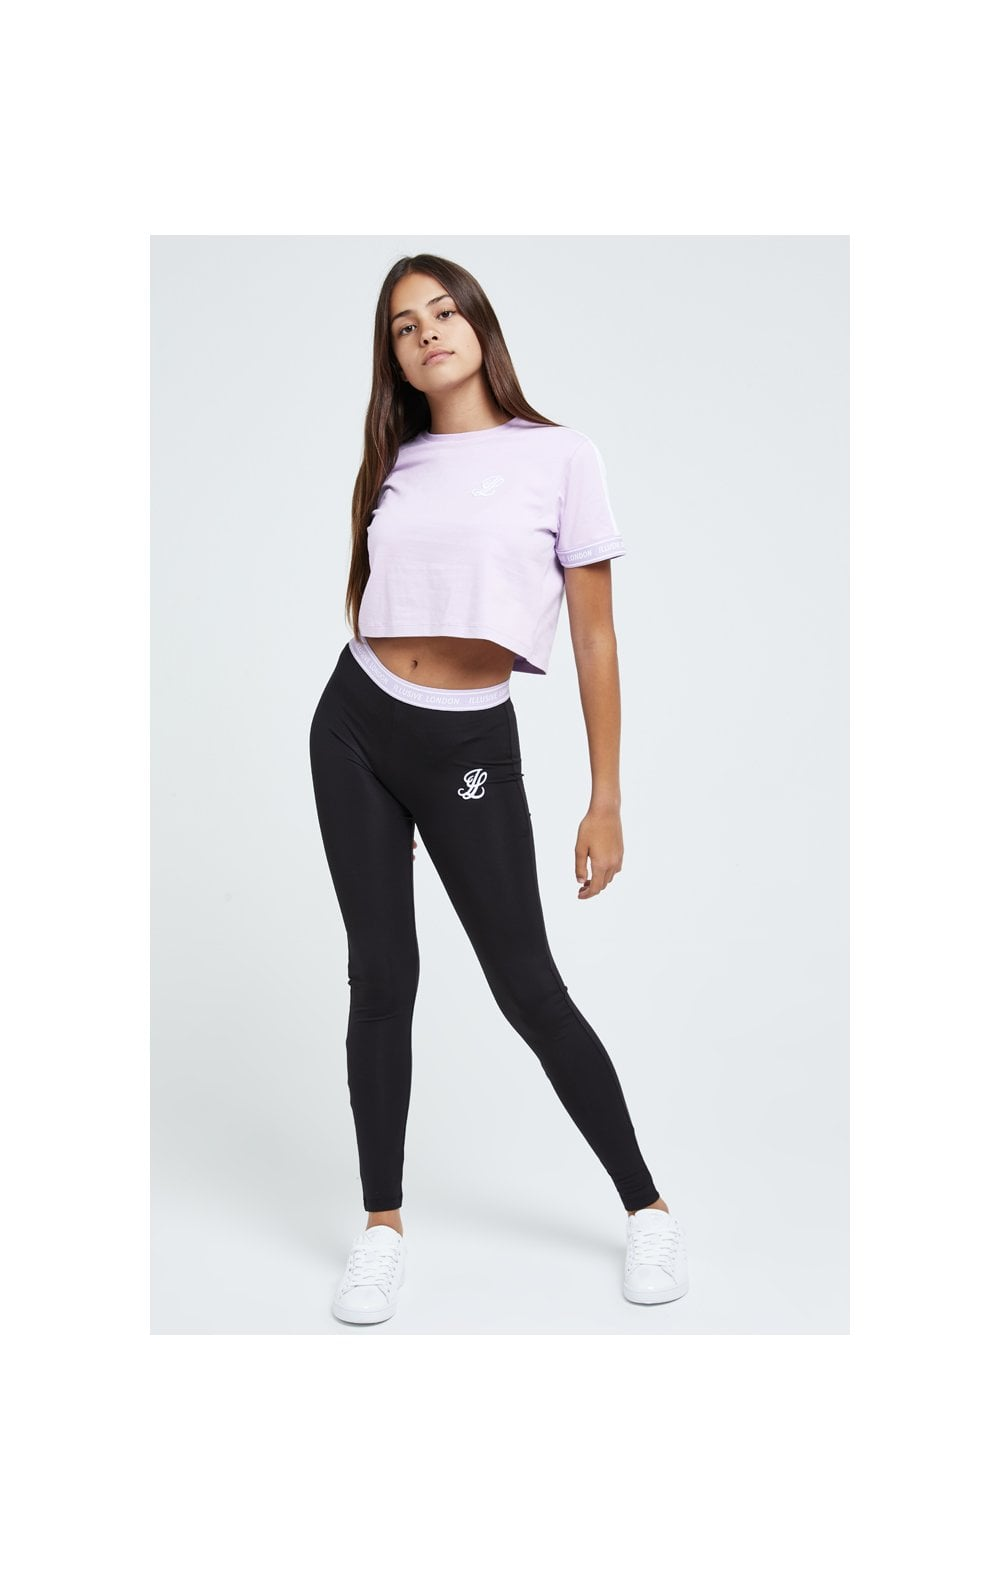 Illusive London Tape Cuff Crop Tee - Lilac (3)